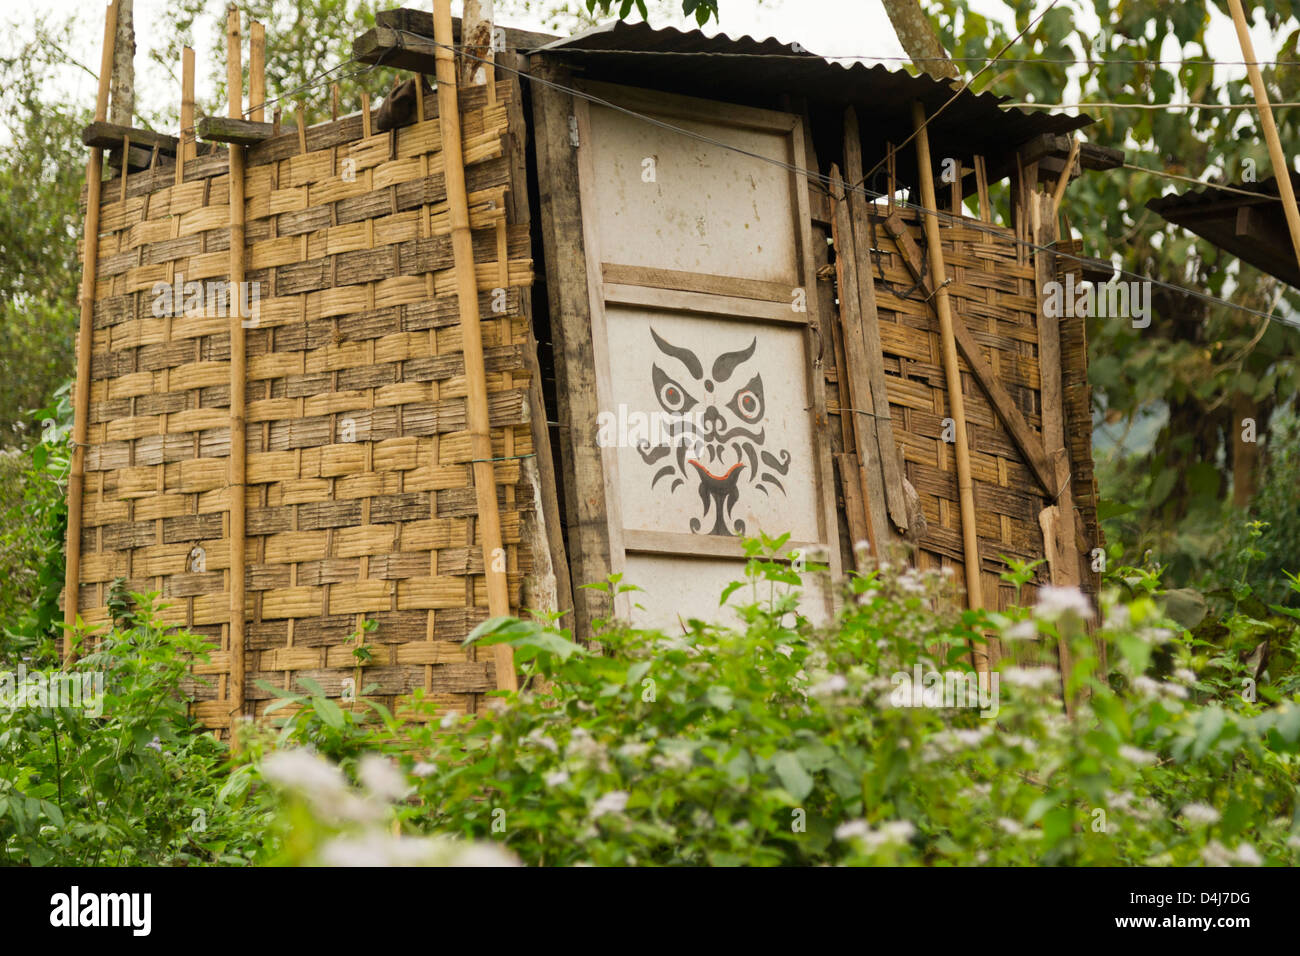 A fierce mask face painted on a bamboo shed - Stock Image